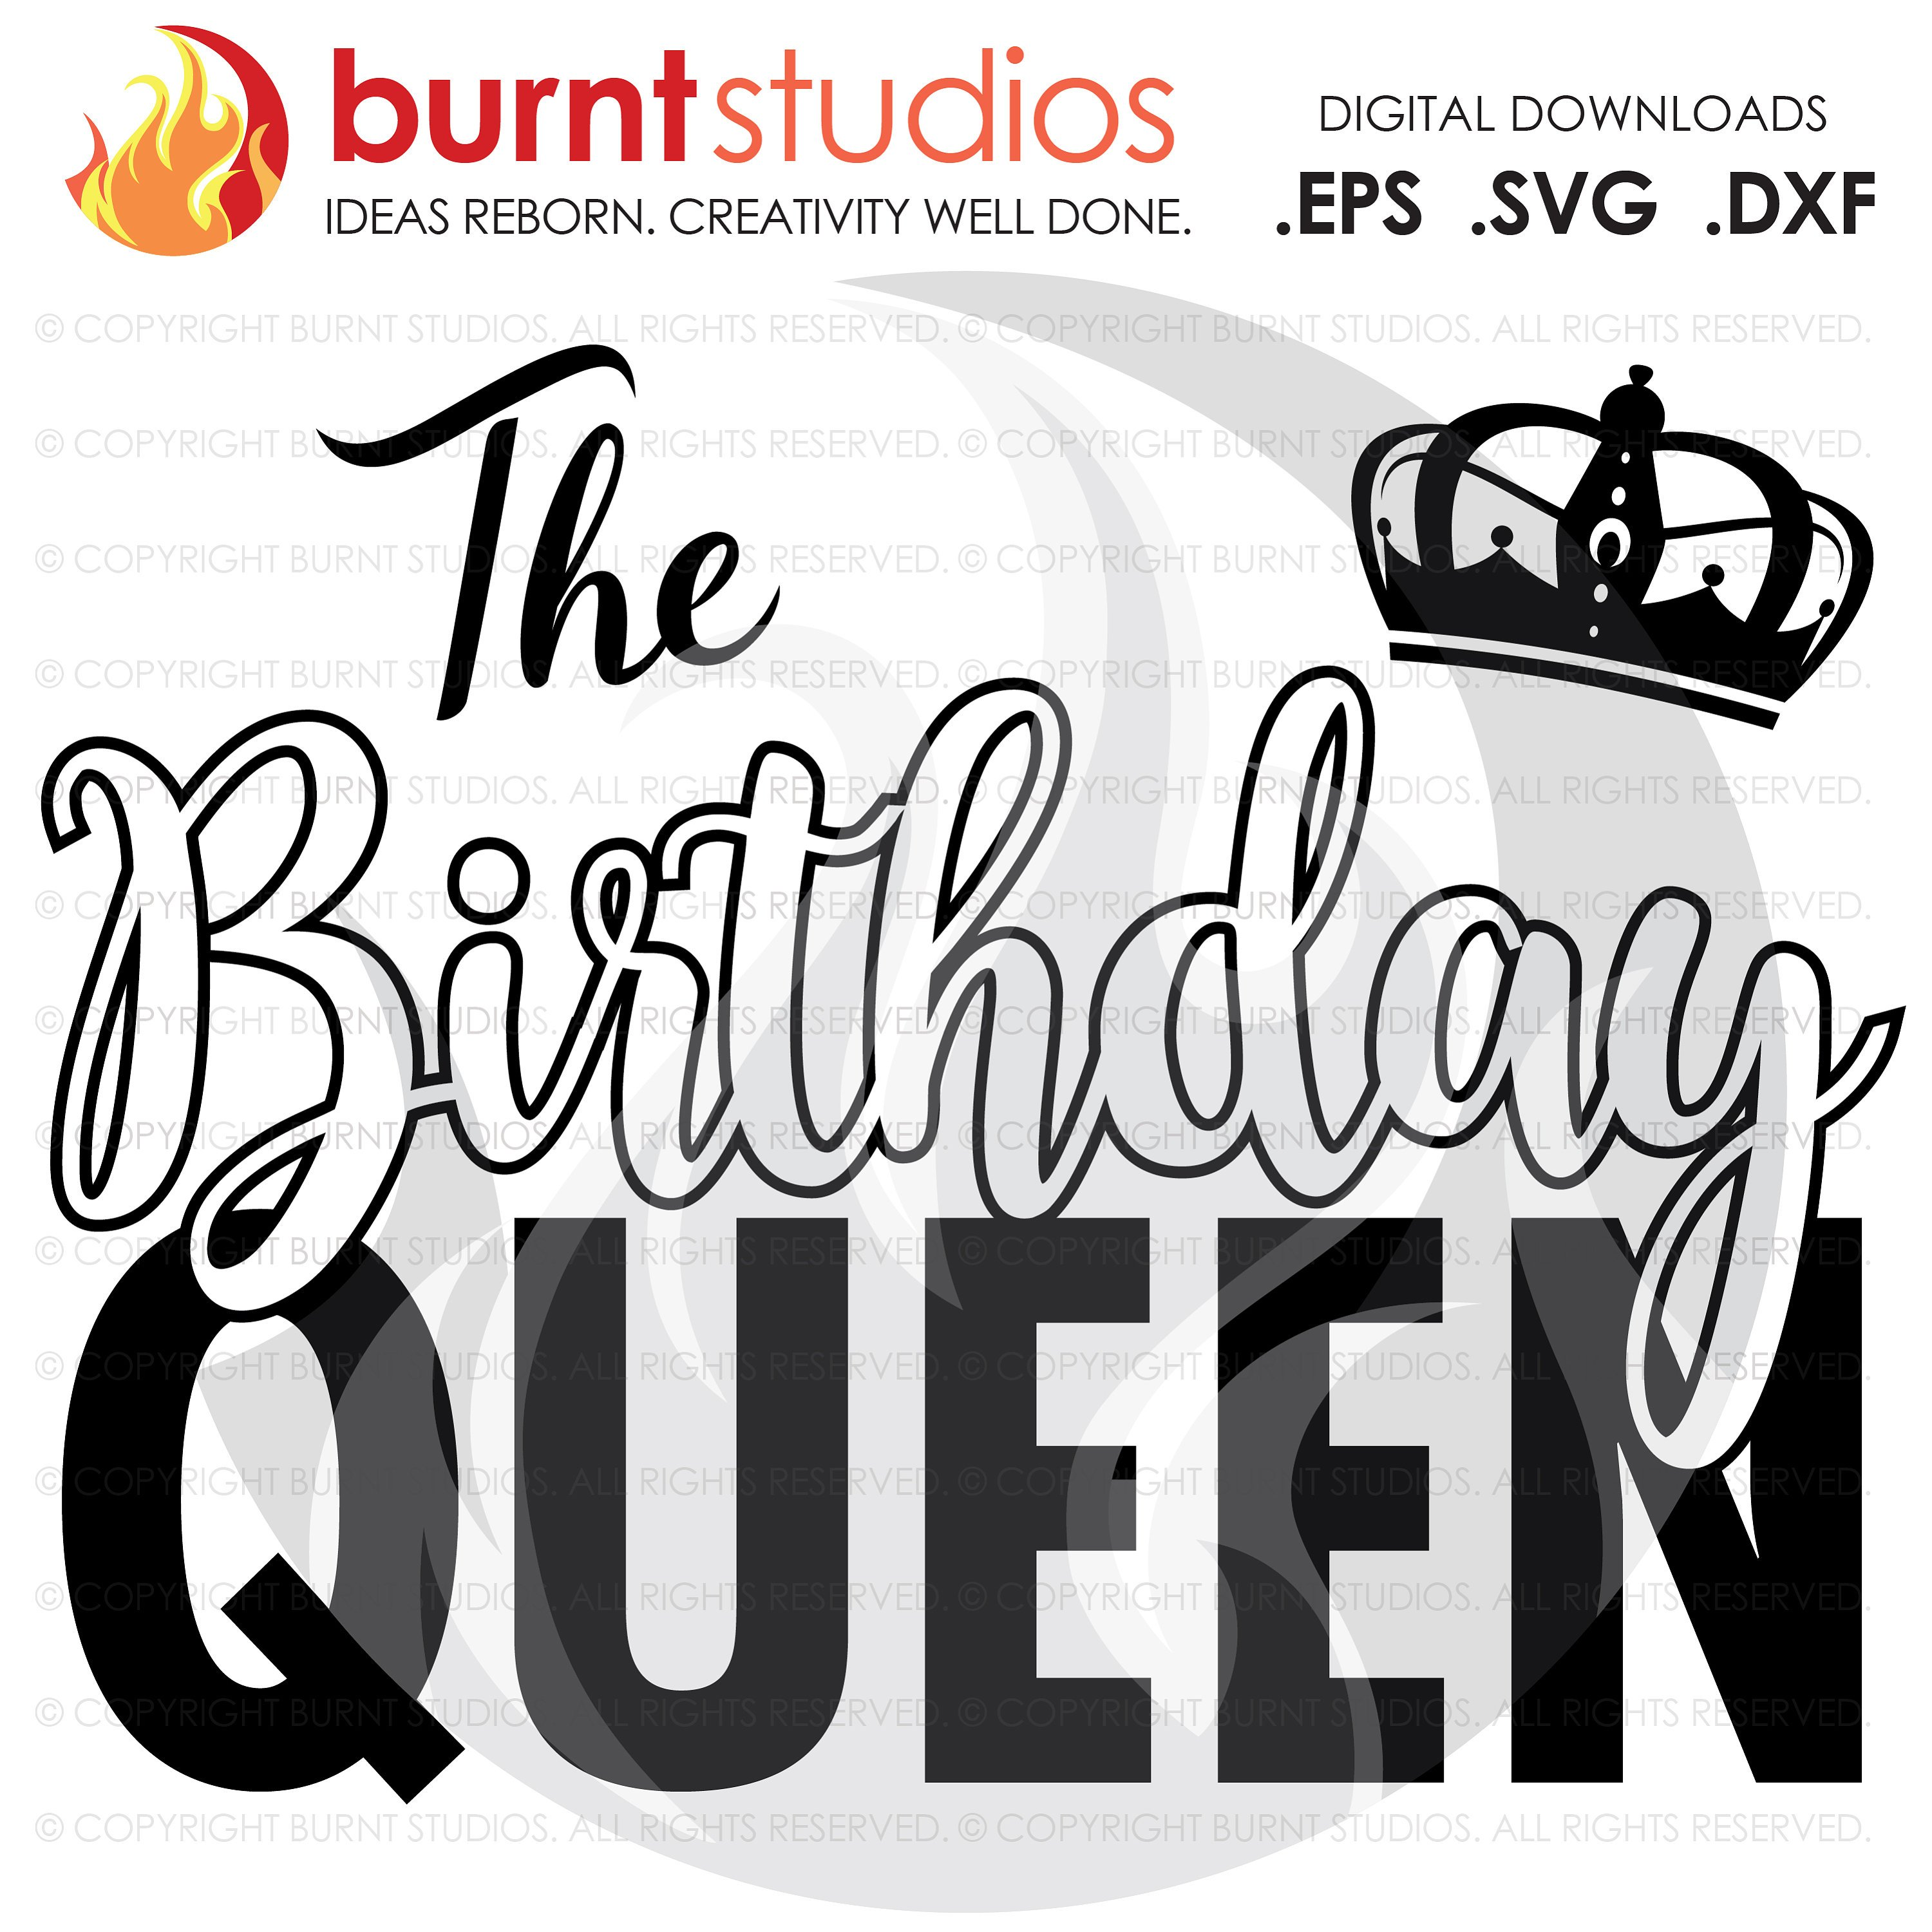 Digital File The Birthday Queen Squad Birthday Party Celebration Tween Ten Shirt Design Decal Design Svg Png Dxf Eps File Burnt Studios